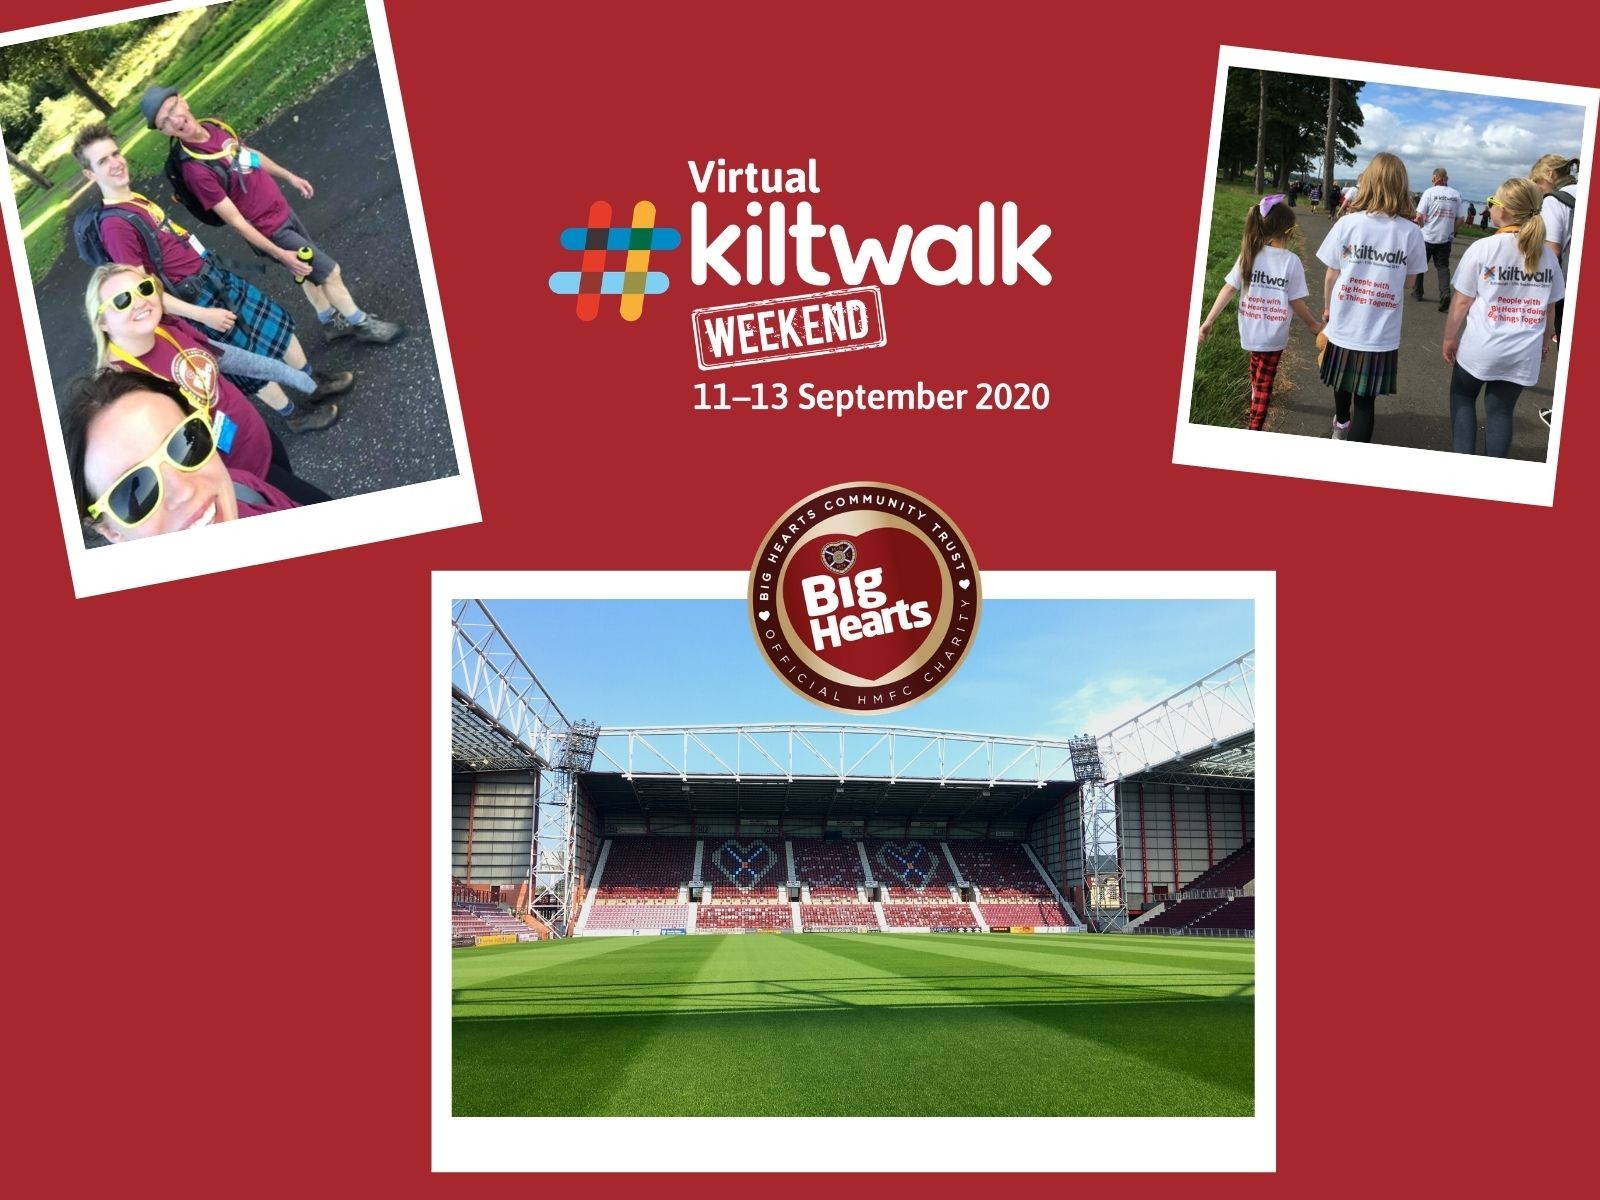 » 1 month to go: All the details about our Big Hearts Kiltwalk 2020!